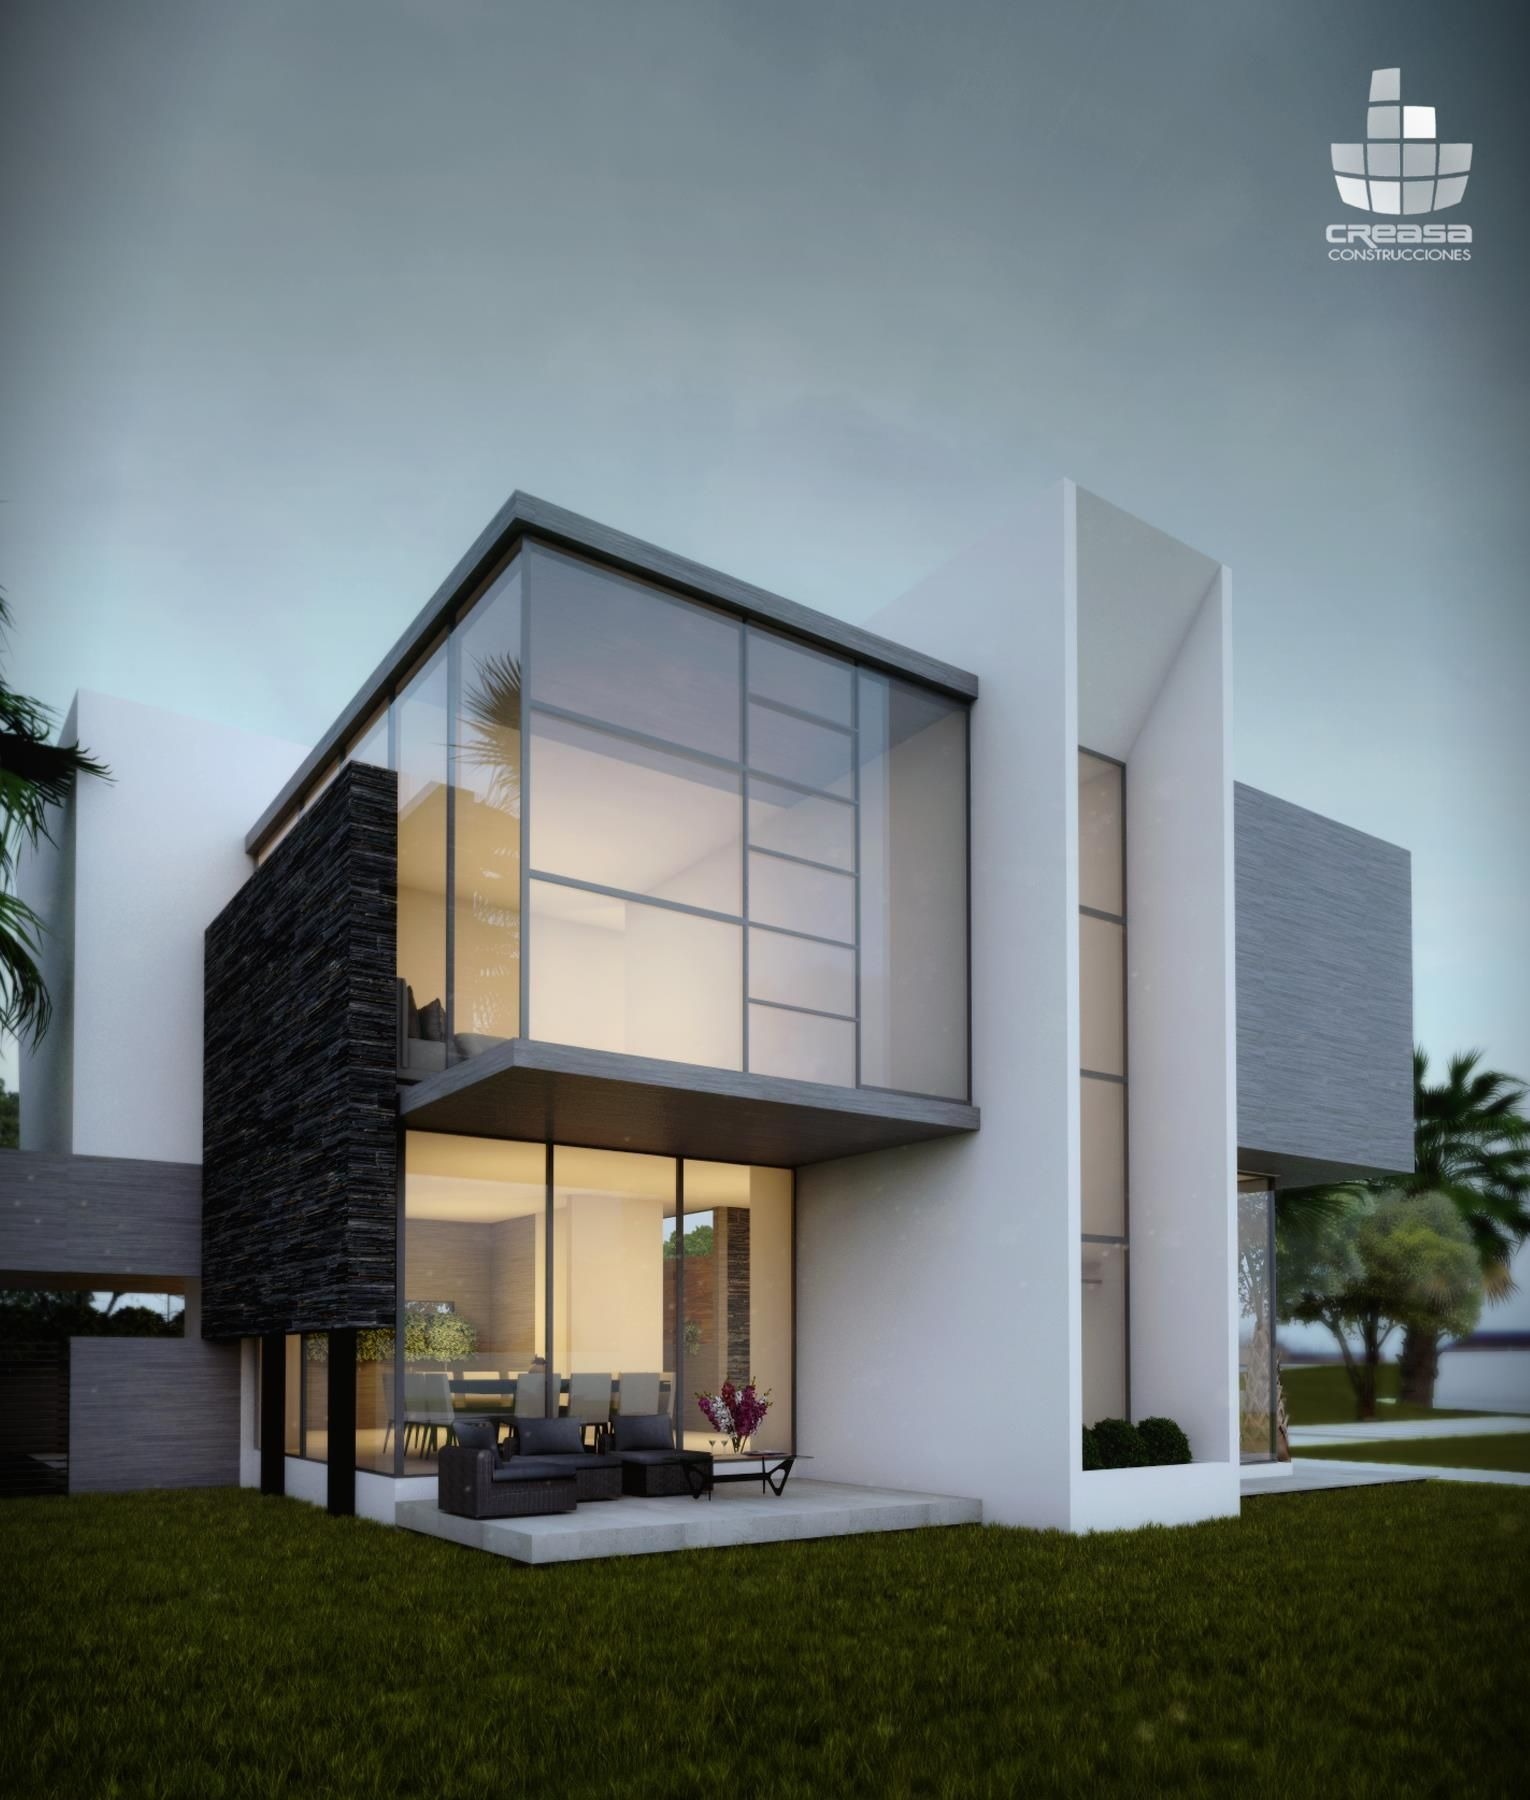 Contemporary House Design Ideas Of Creasa Modern Architecture Pinterest Villas House